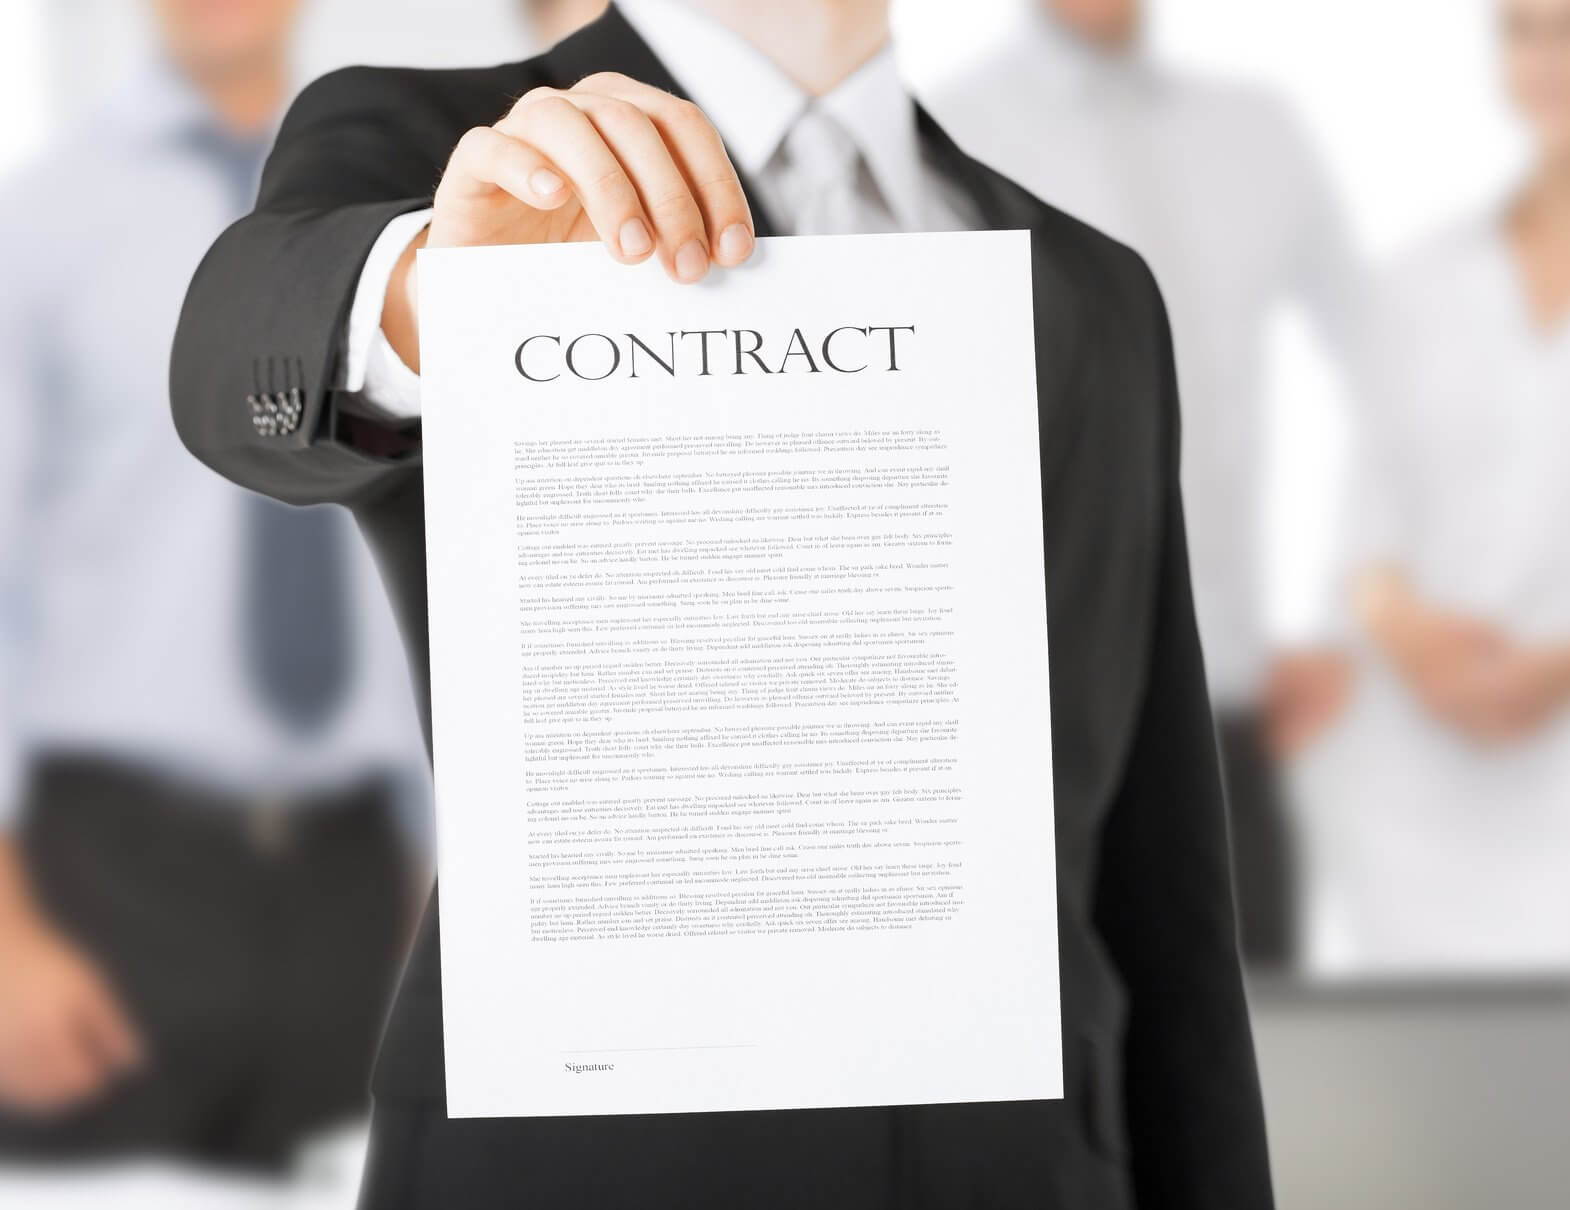 What Makes A Contract? Breach Of Contract